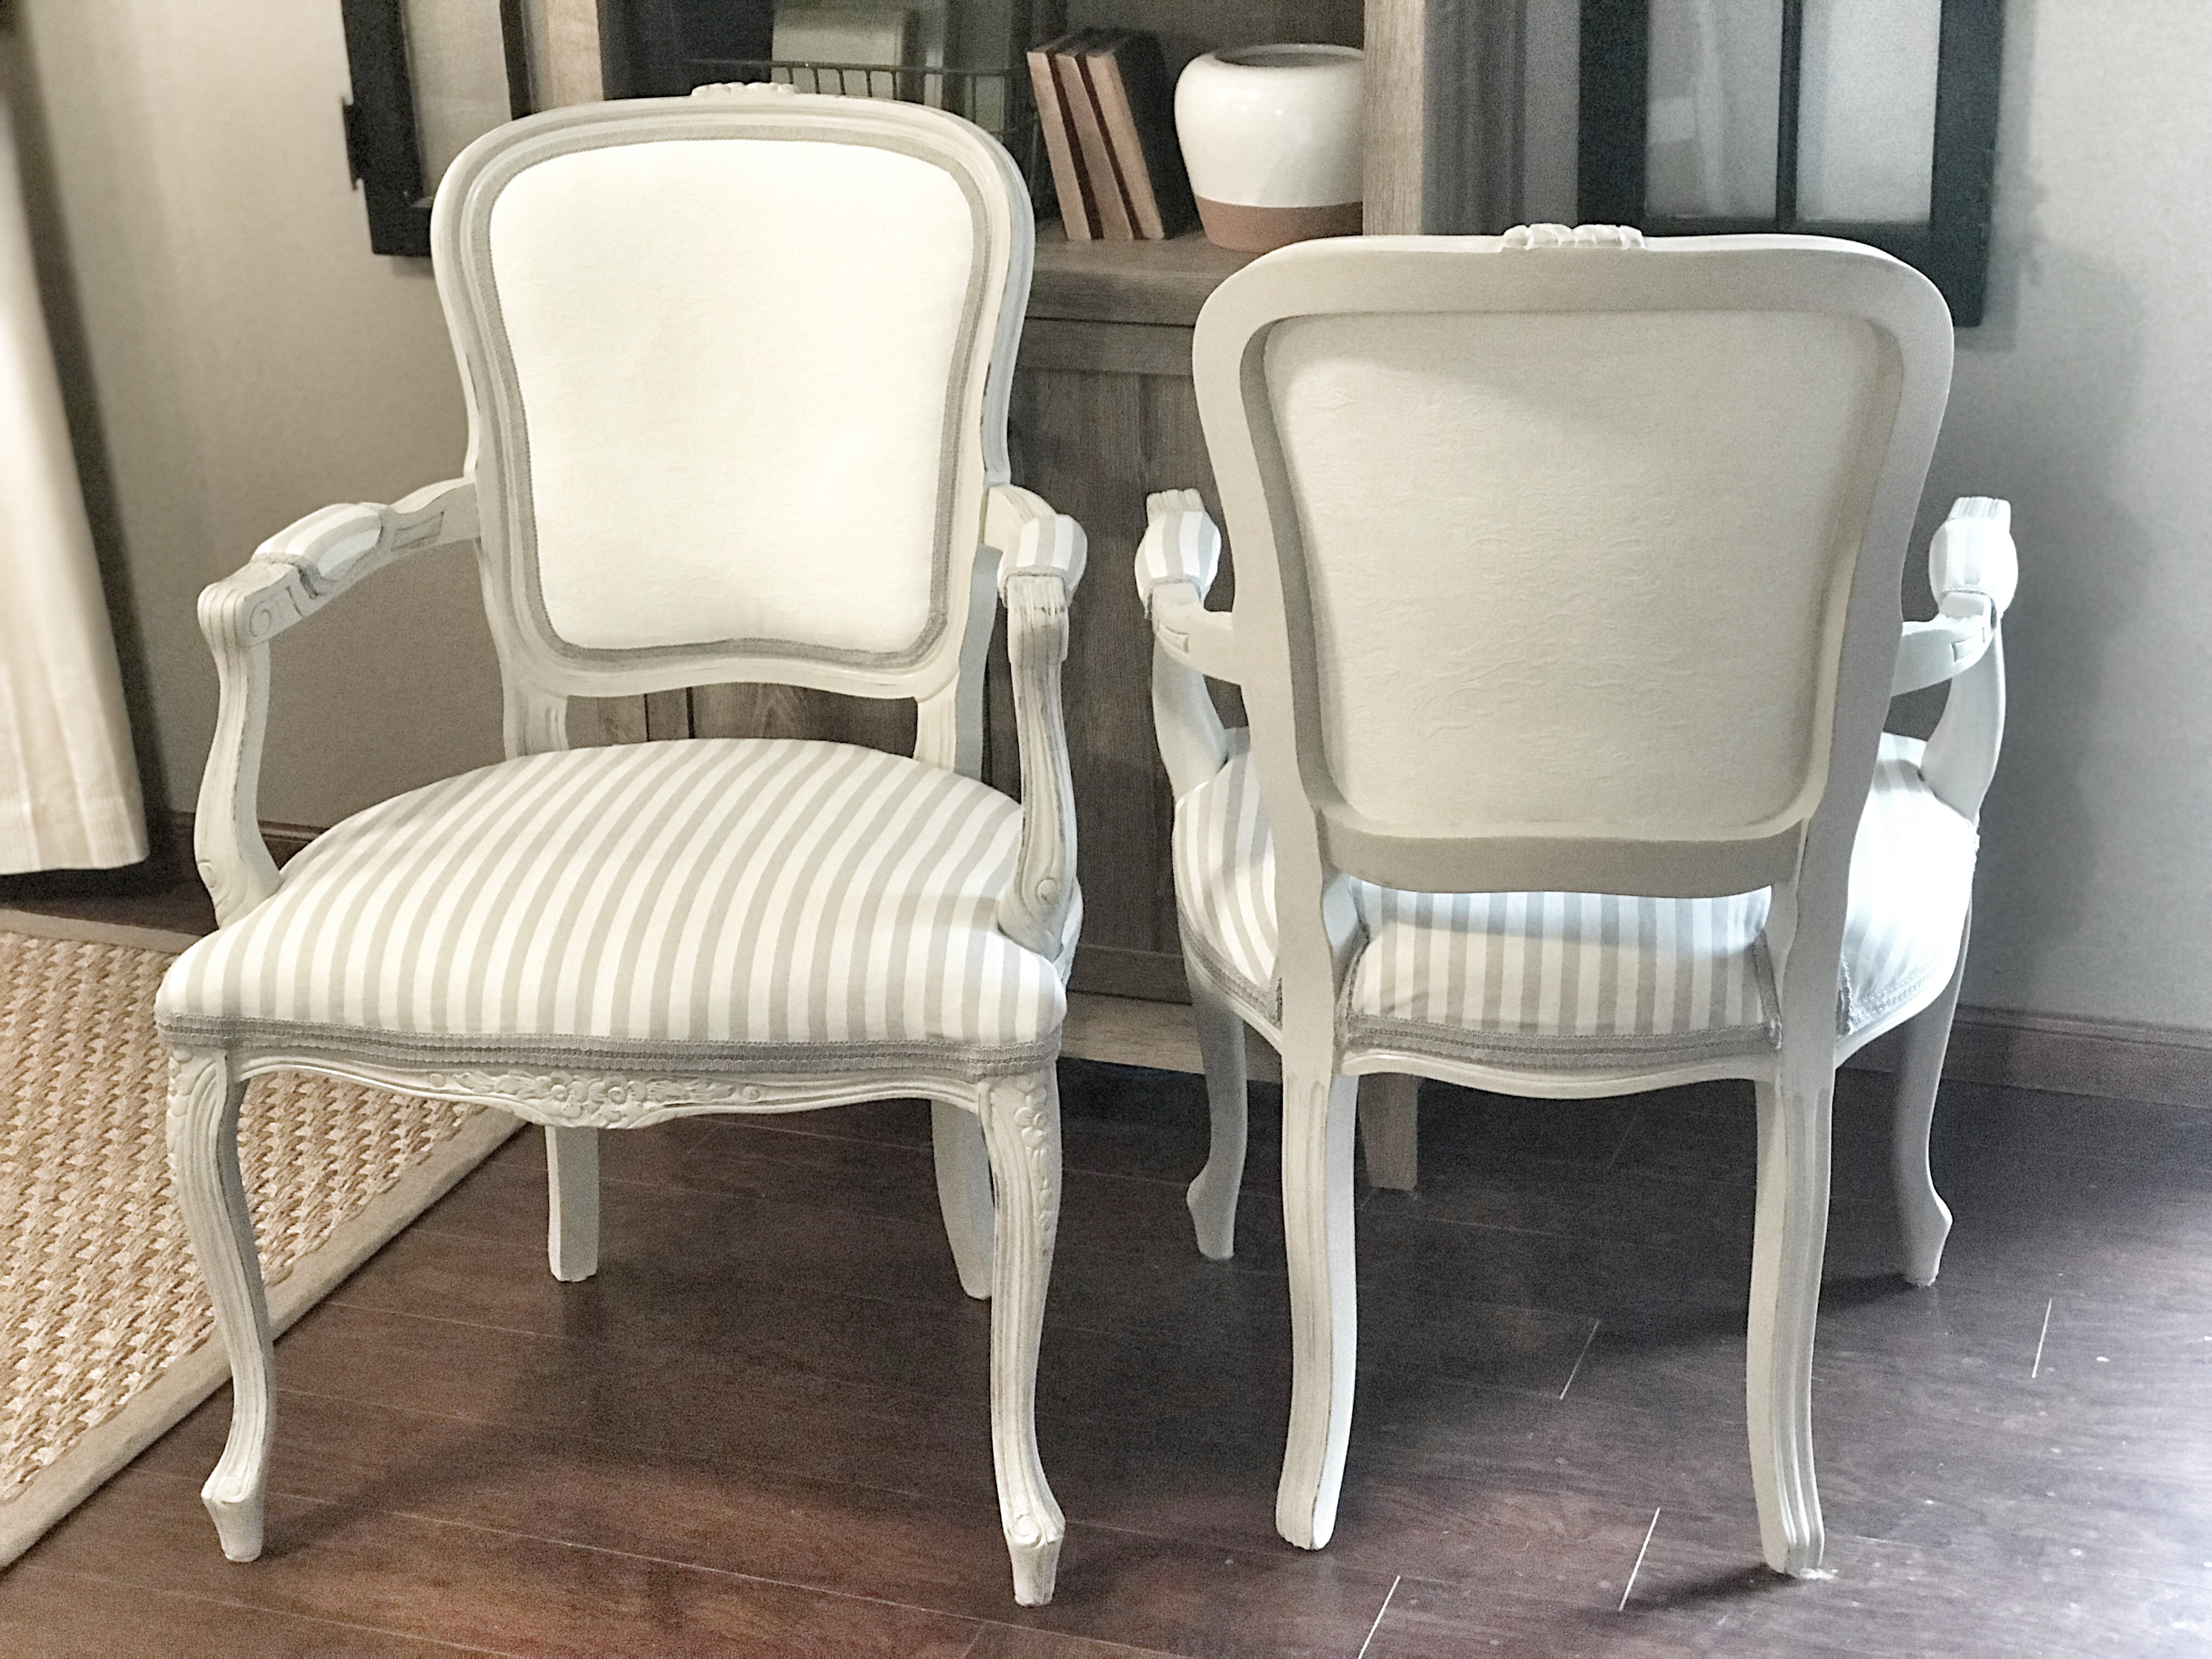 painted fabric, reupholstered chairs